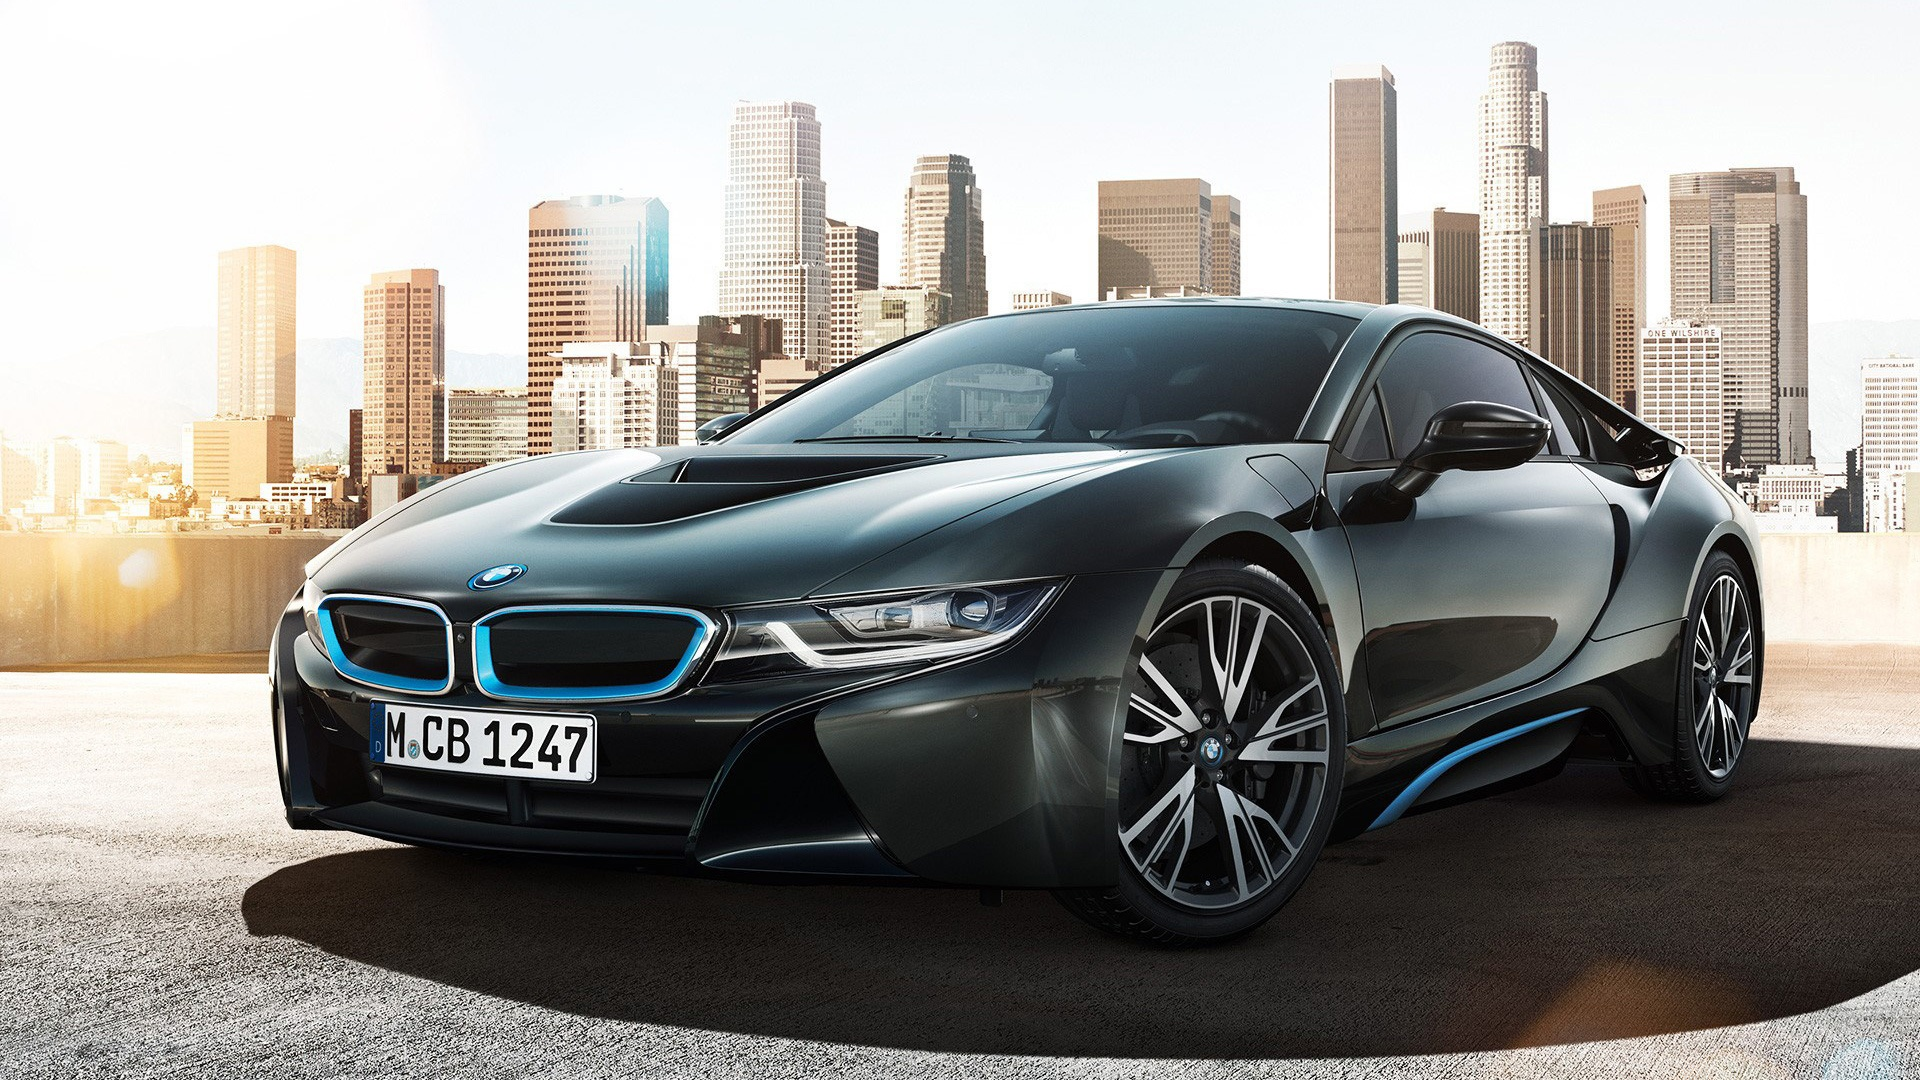 Bmw I8 Black Car Wallpaper 5 Jpg Hd Wallpapers Hd Images Hd Pictures